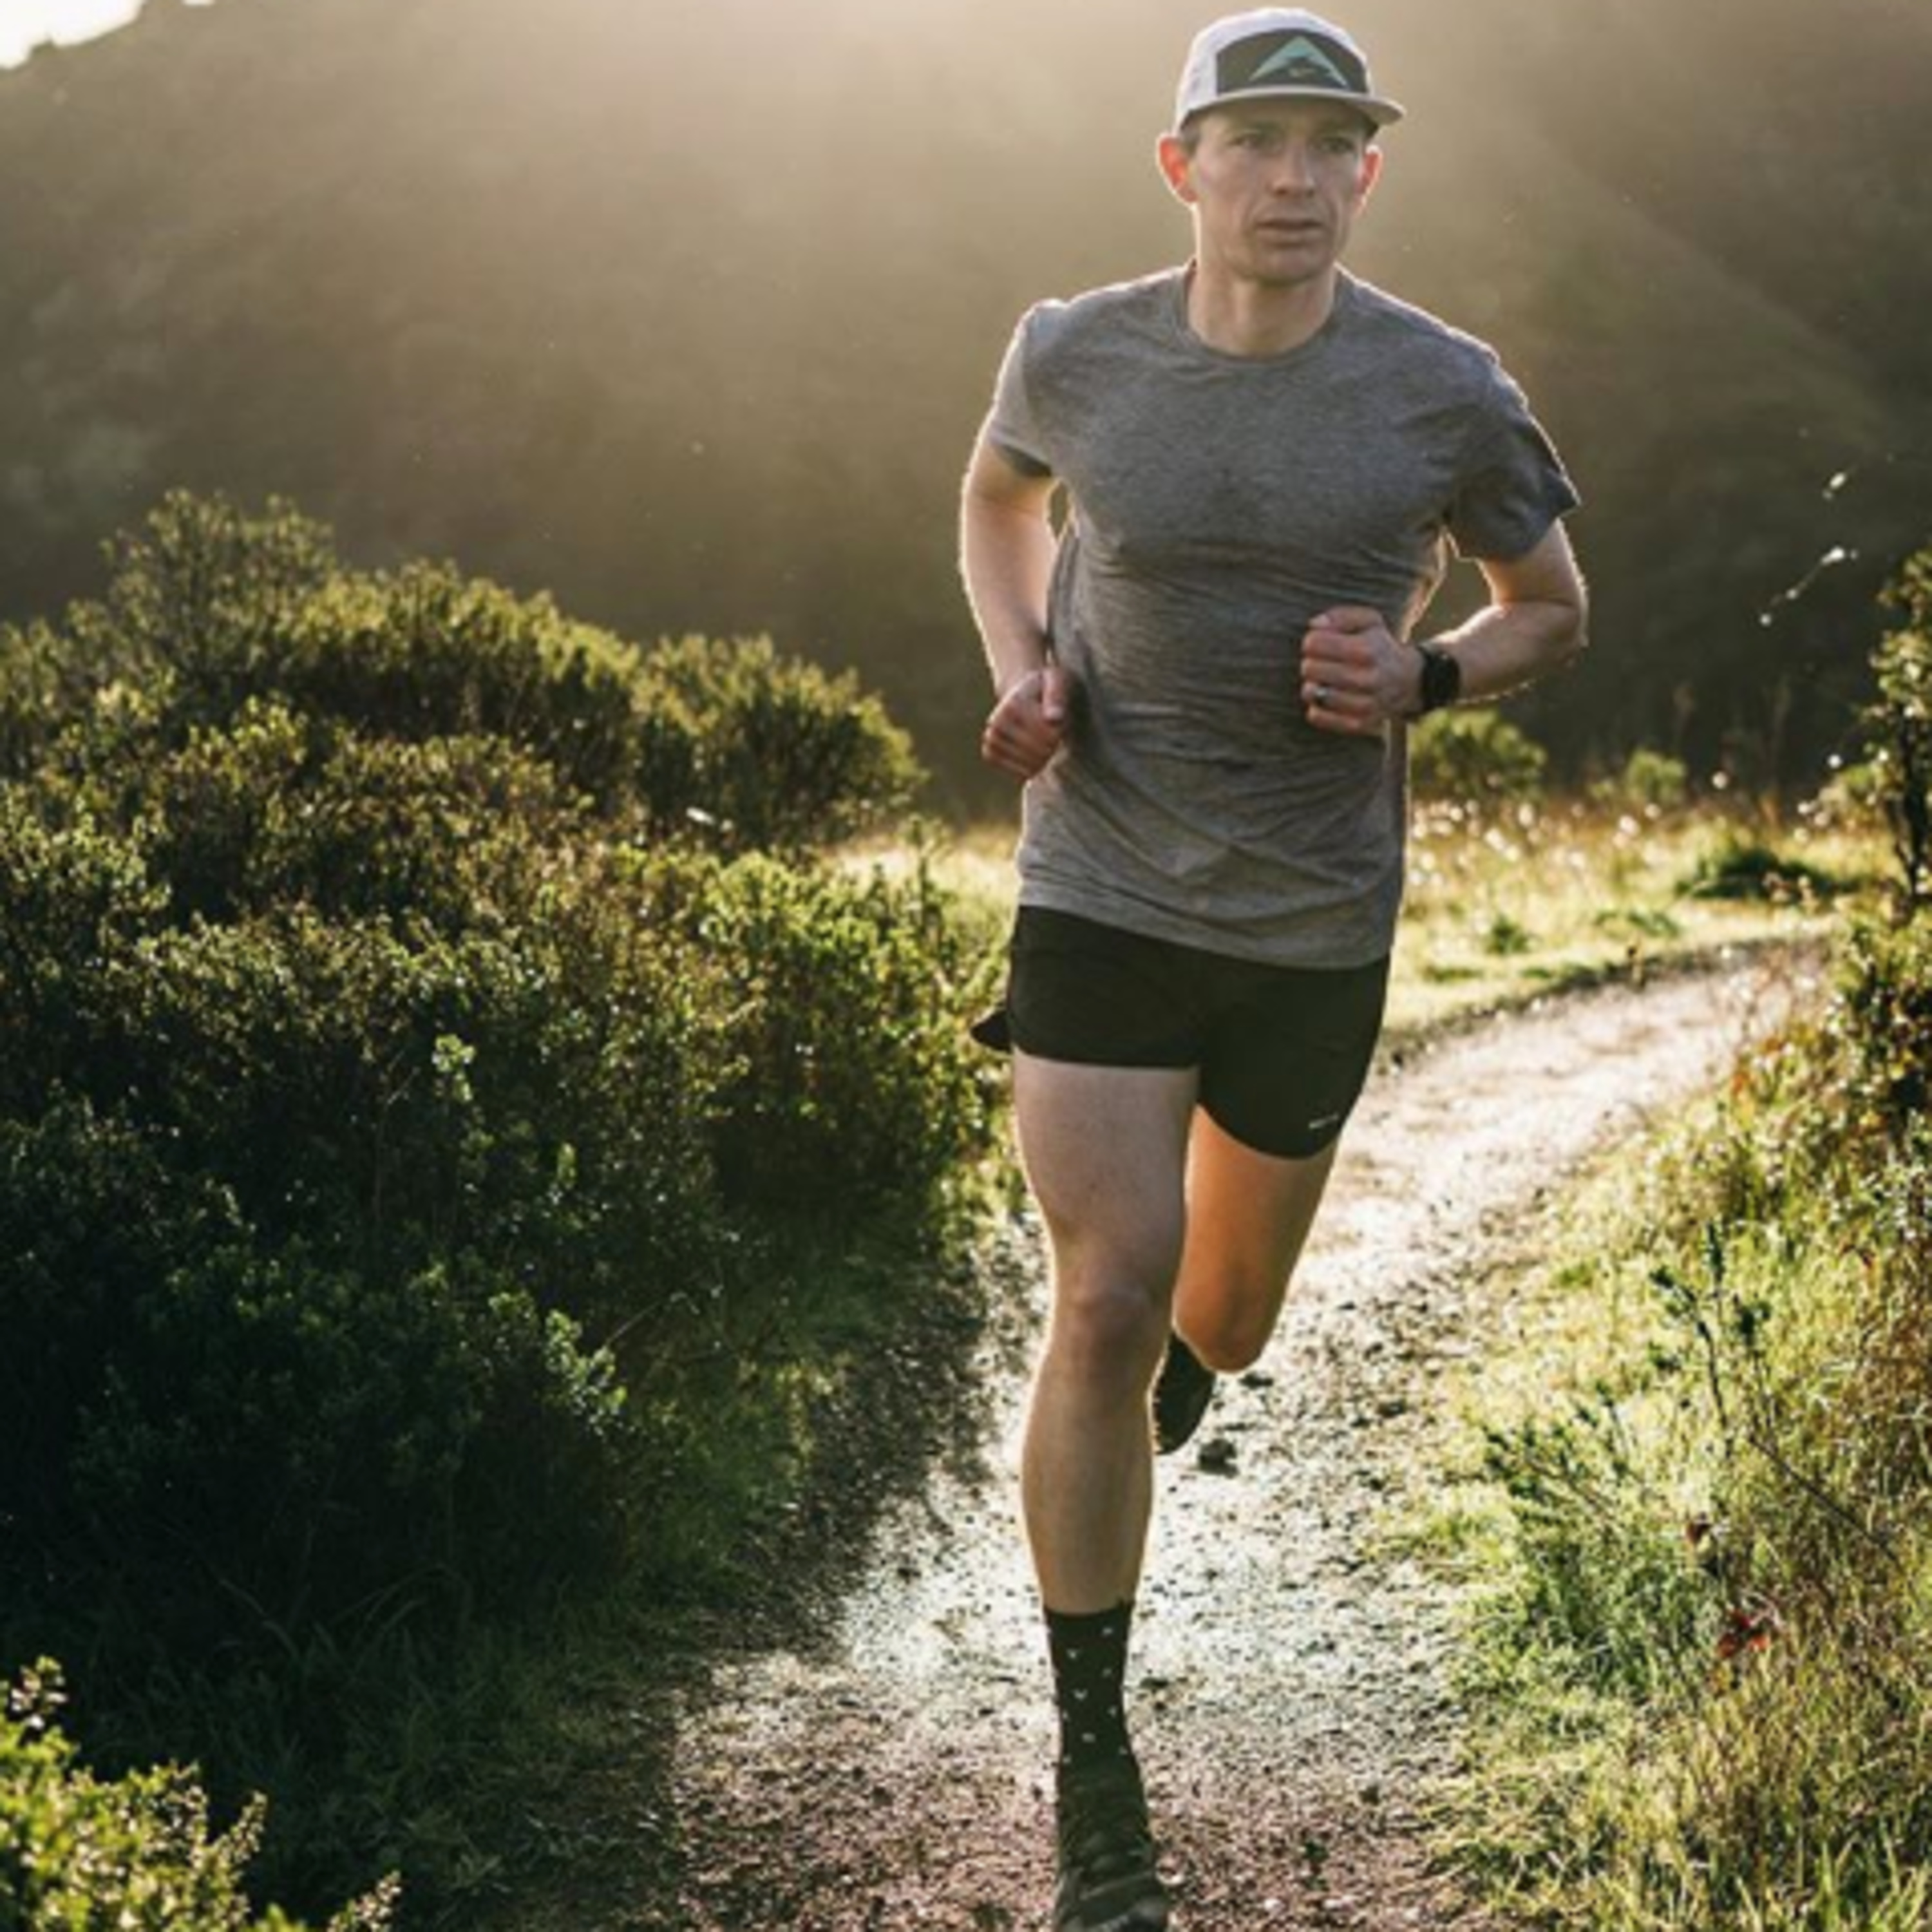 41. Mario Fraioli : The State of Affairs in Running (and where do we go from here?)